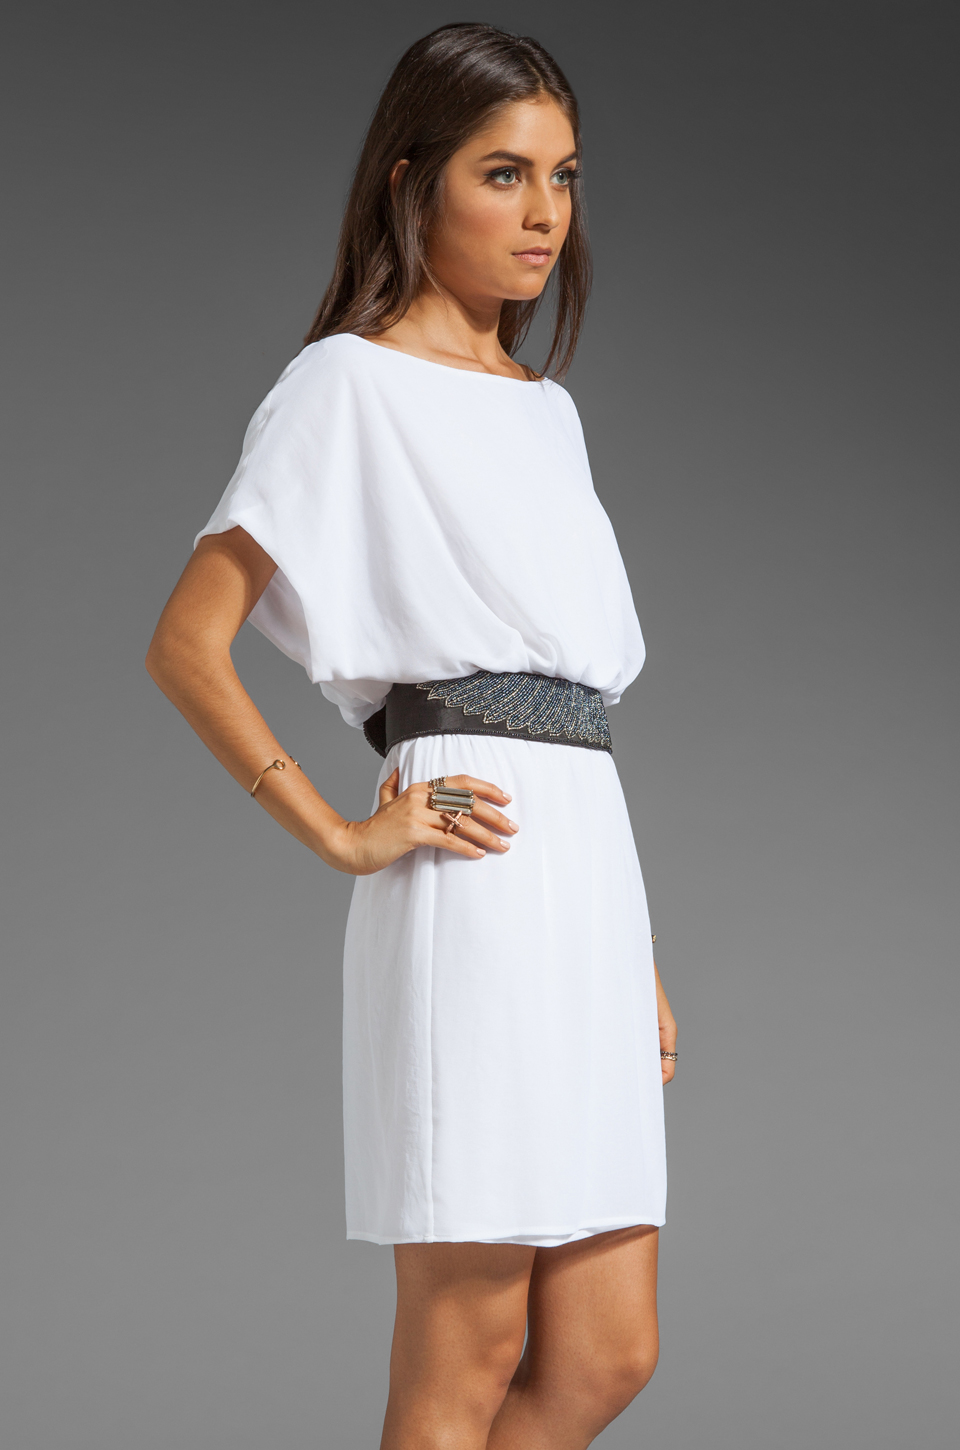 Rory Beca Harvey Beaded Belt Dress in Pillow